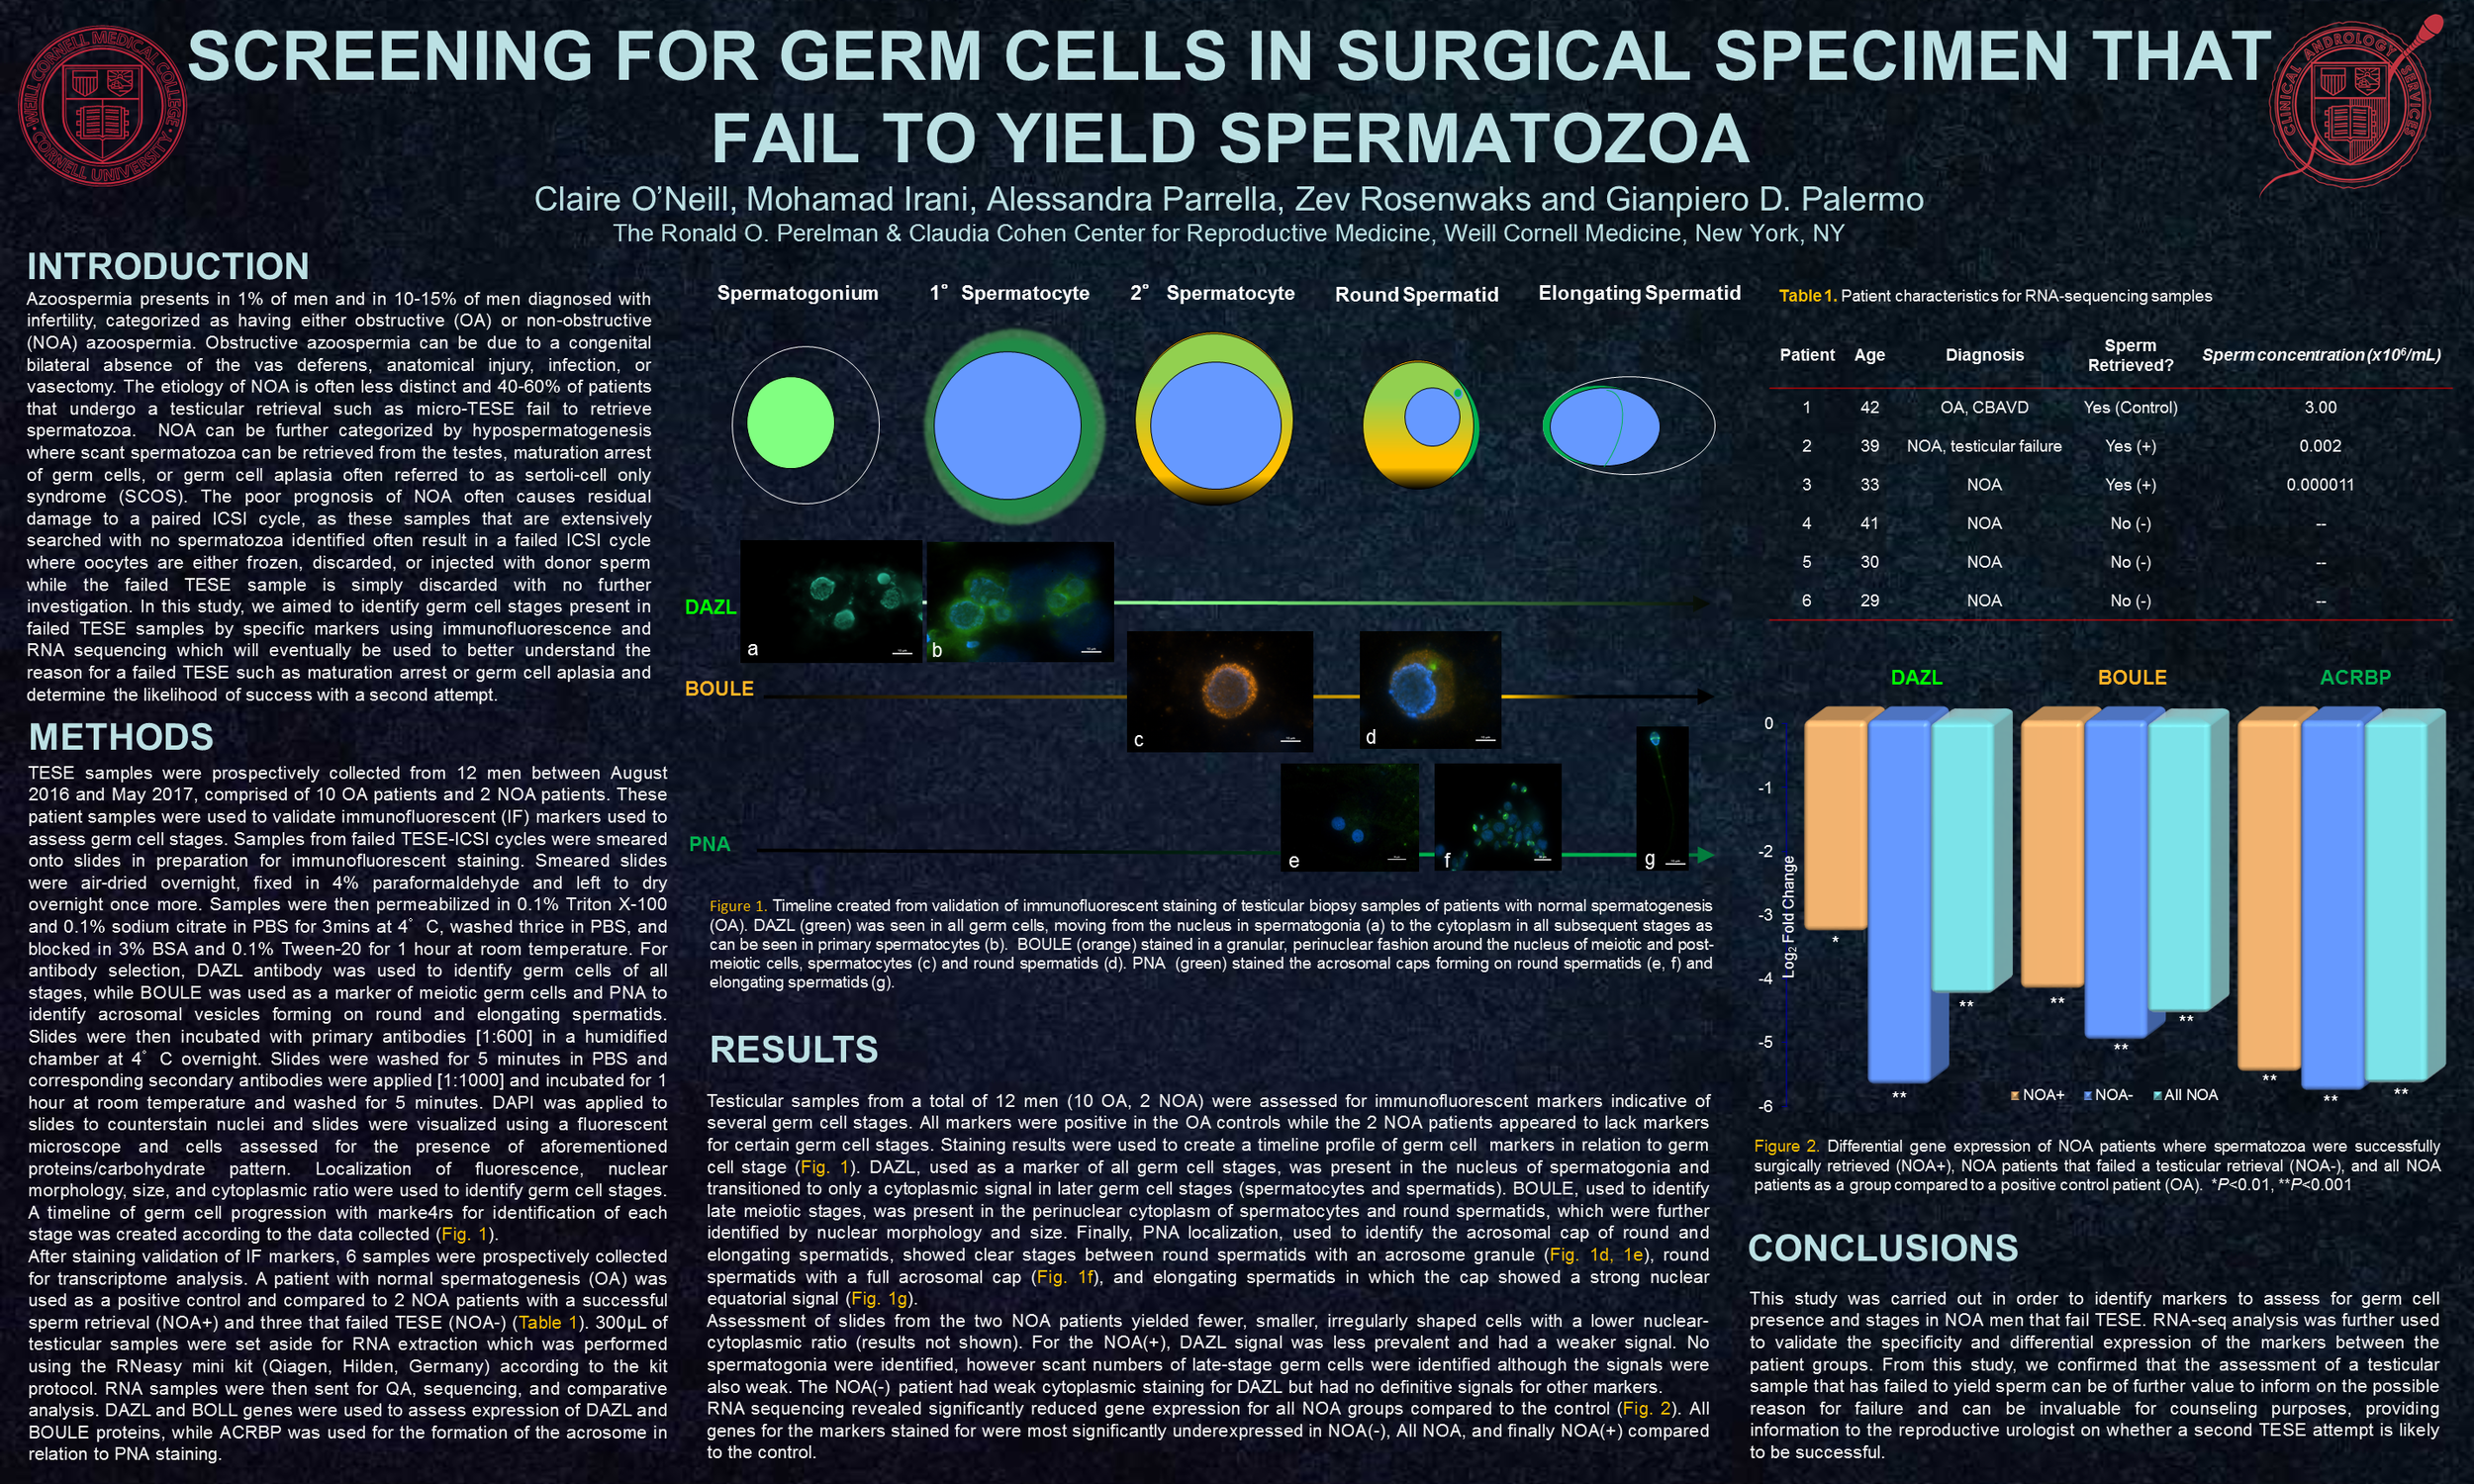 Screening for Germ Cells in Surgical Specimen that Fail to Yield Spermatozoa.png